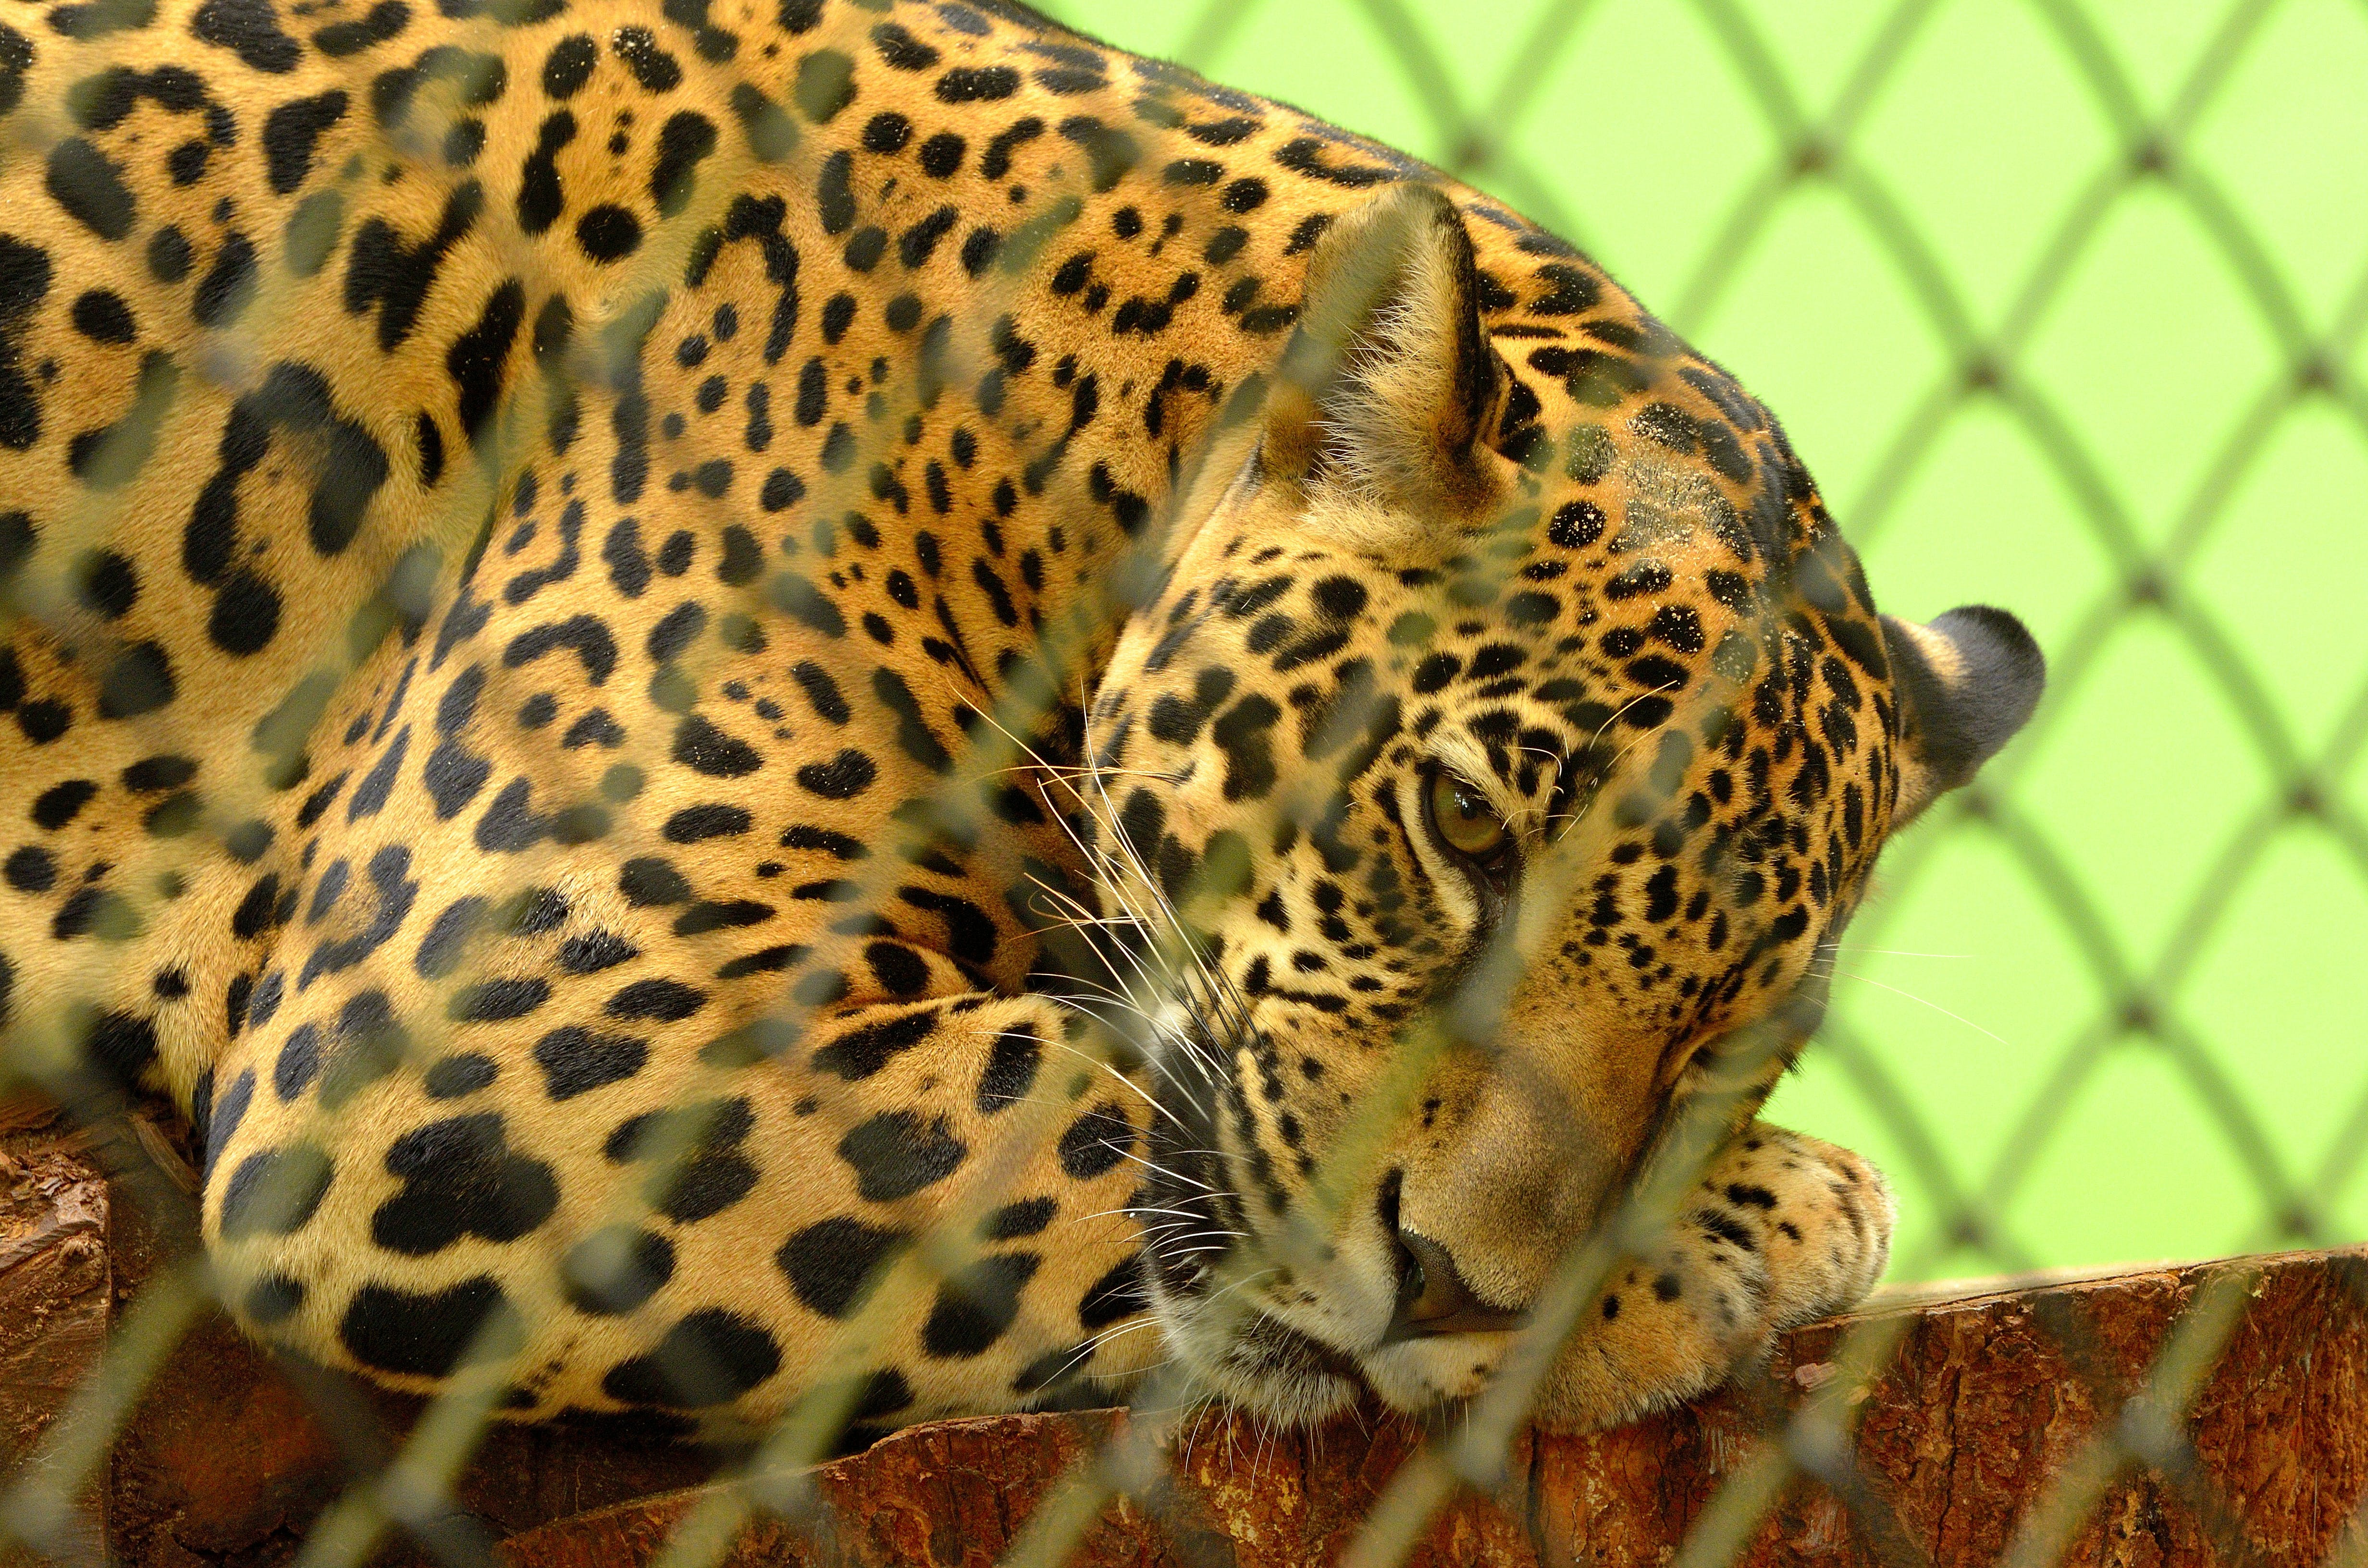 Leopard on Cage in Closeup Photography